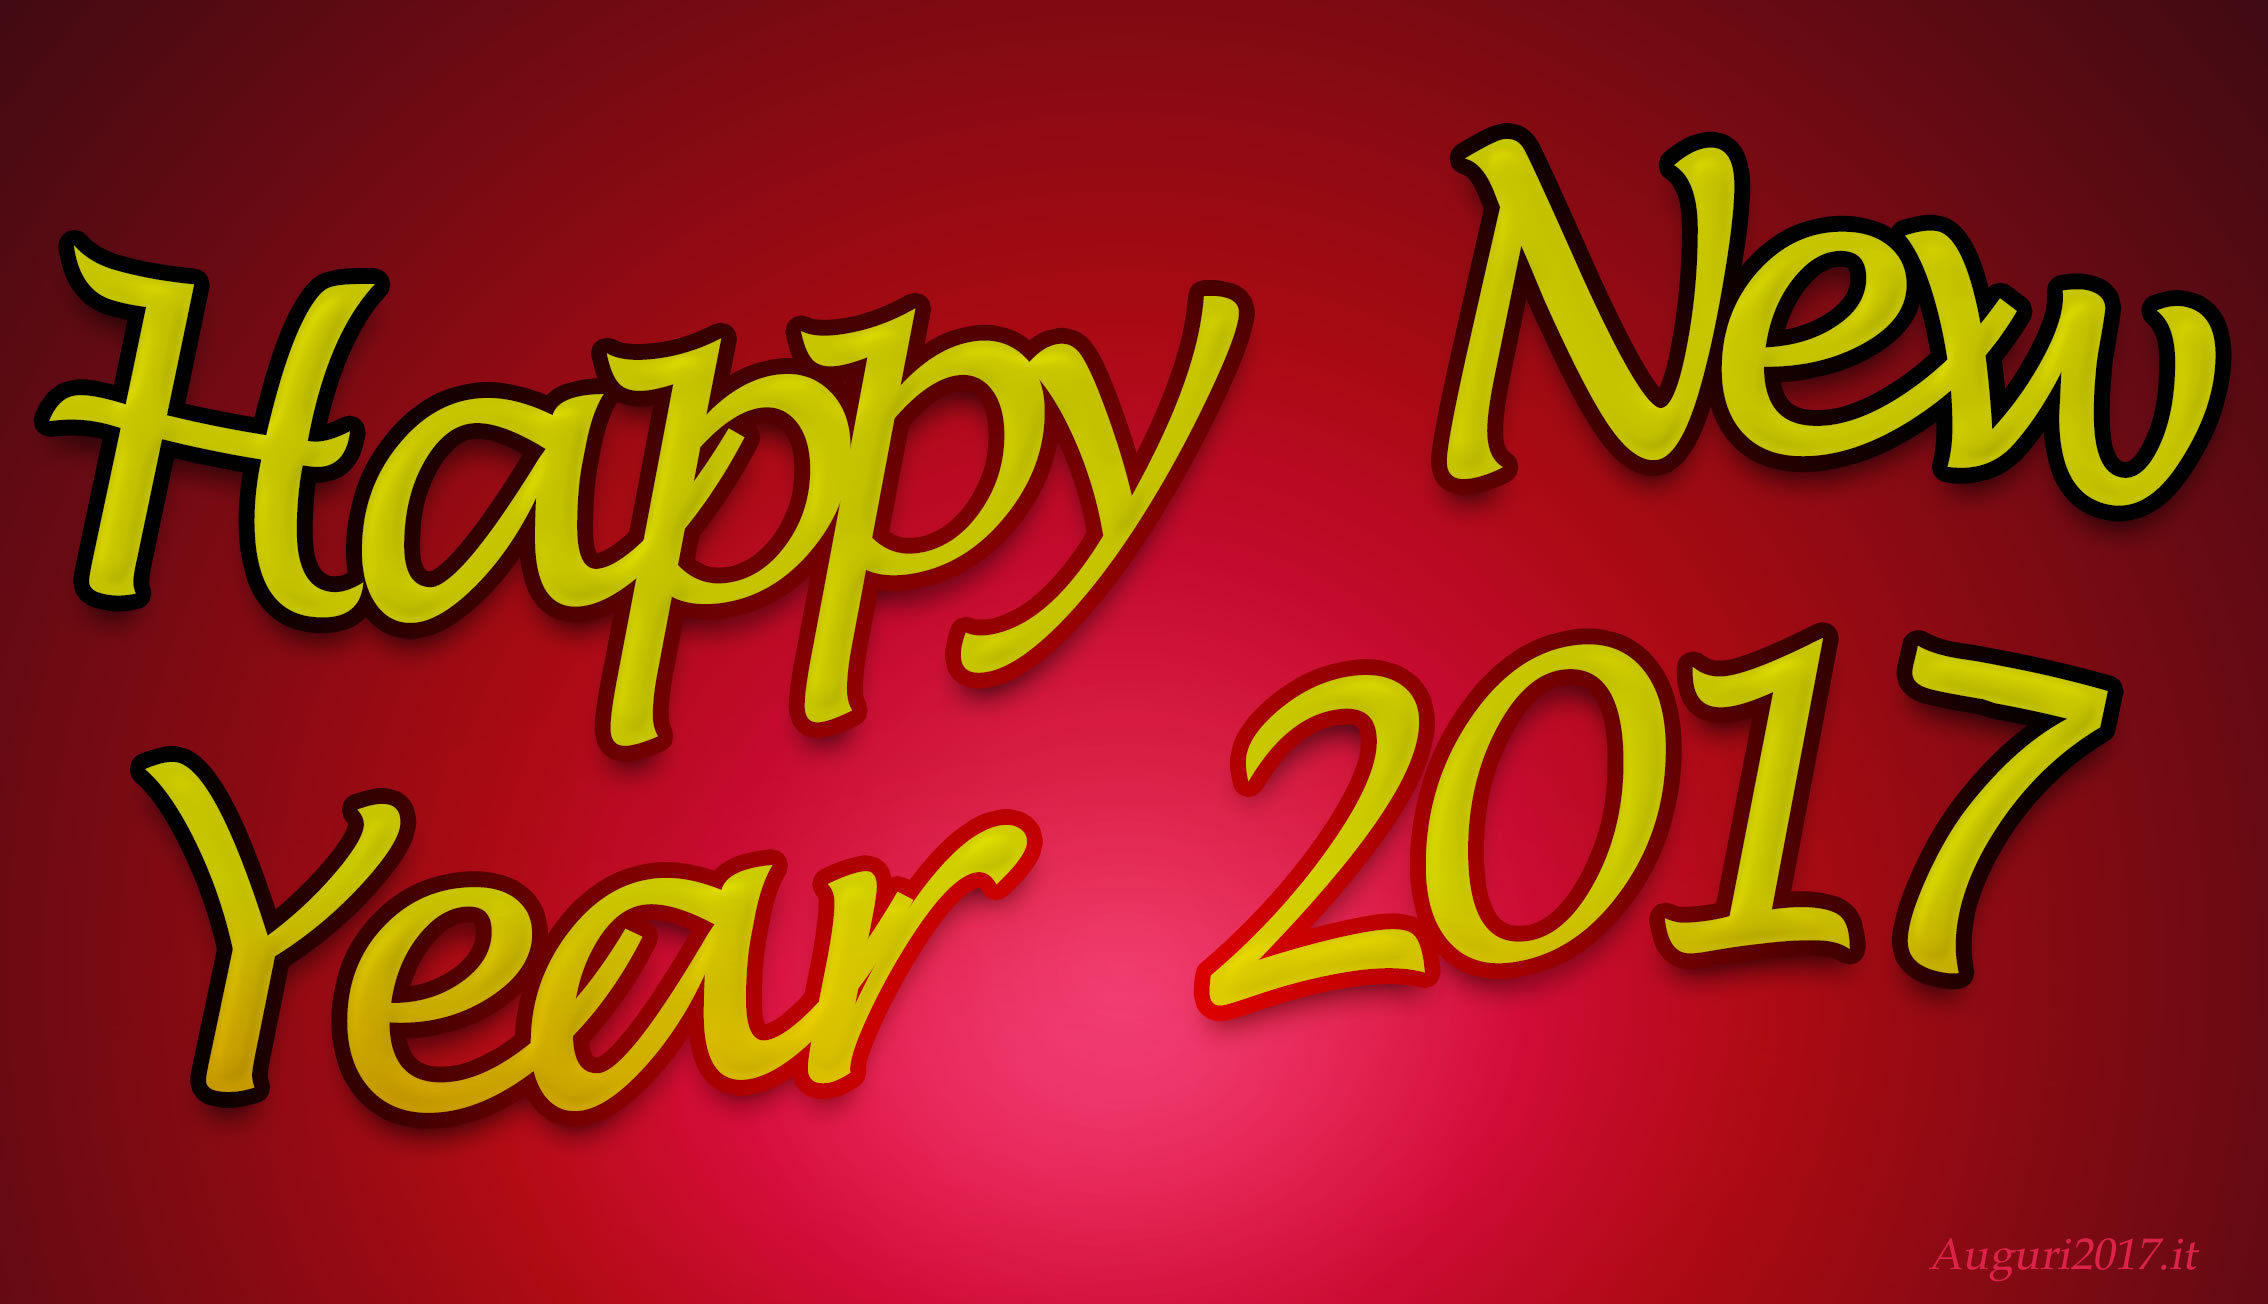 Happy New Year 2017 Wallpapers Images Photos Pictures ...